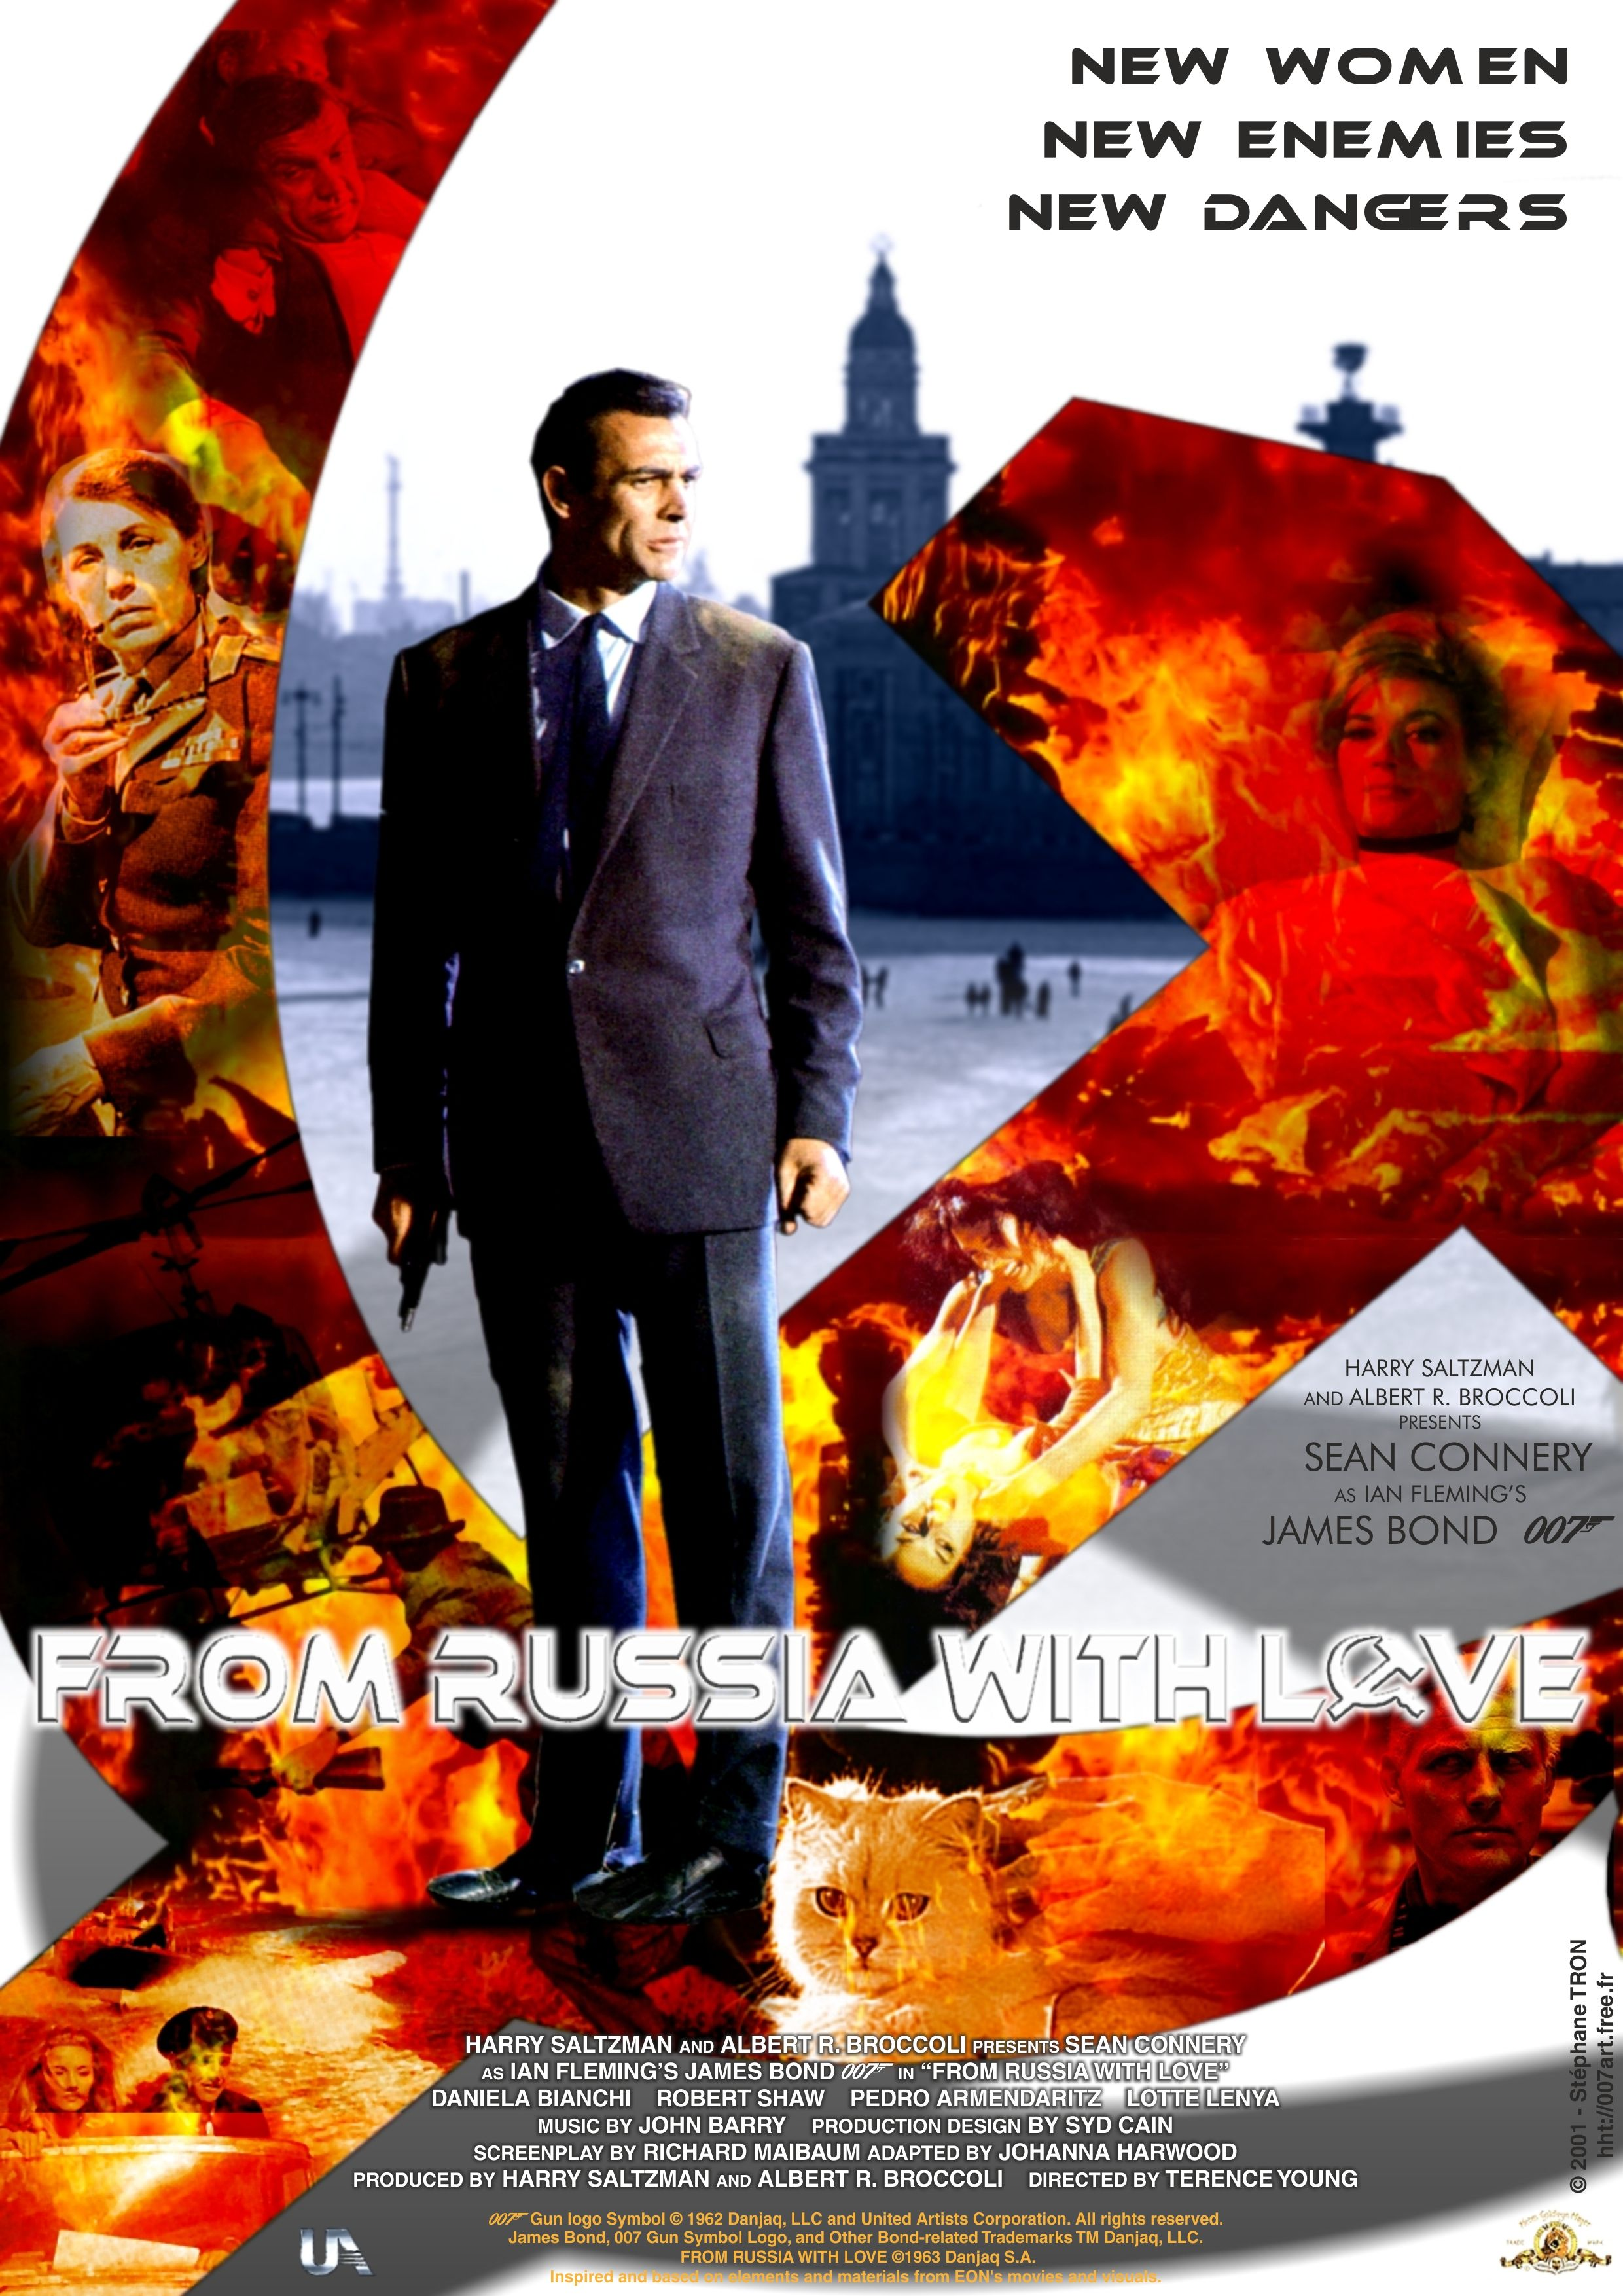 James Bond From Russia With Love Fan Poster 007 James Bond